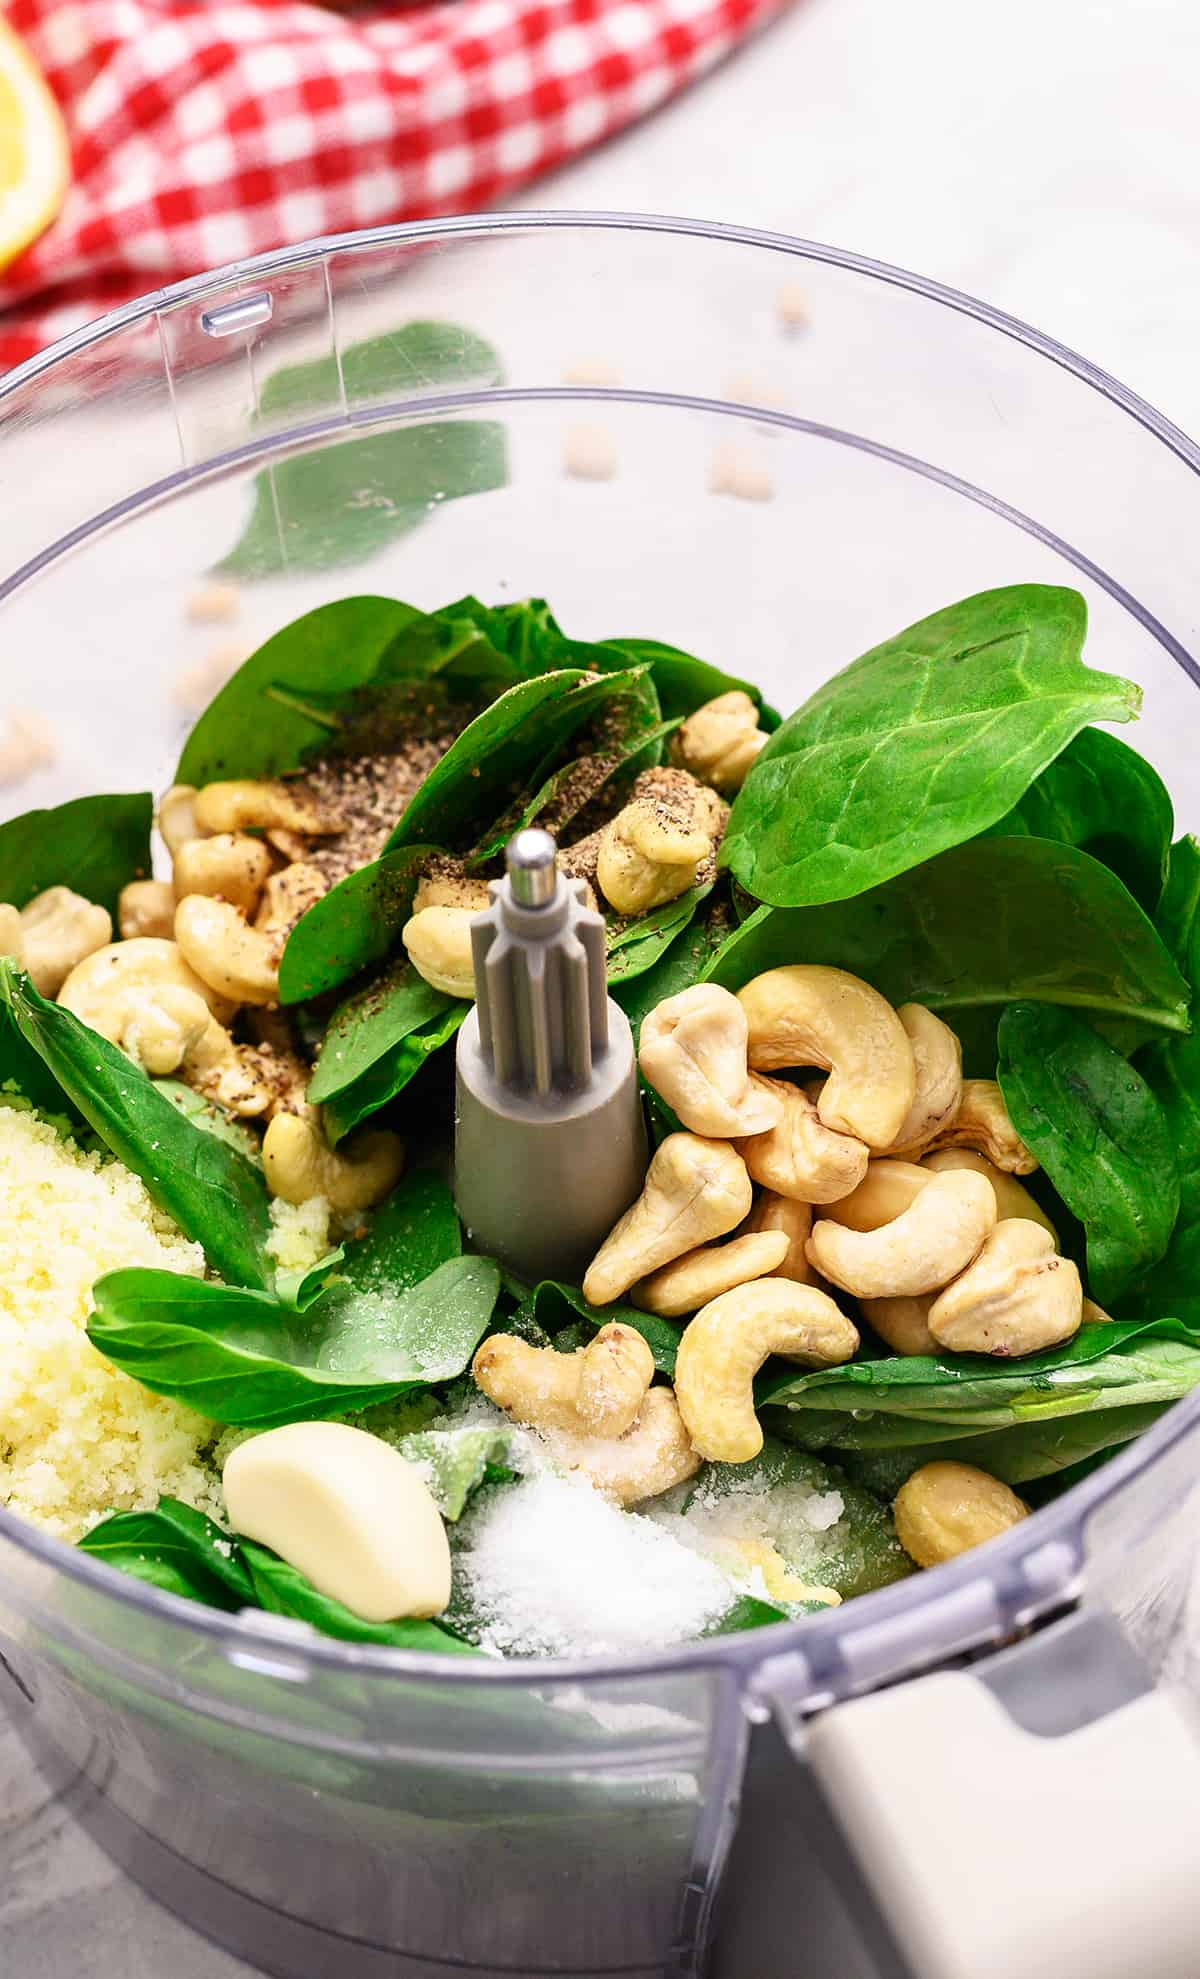 Pesto ingredients in a food processor, including nuts, garlic, spinach and basil.